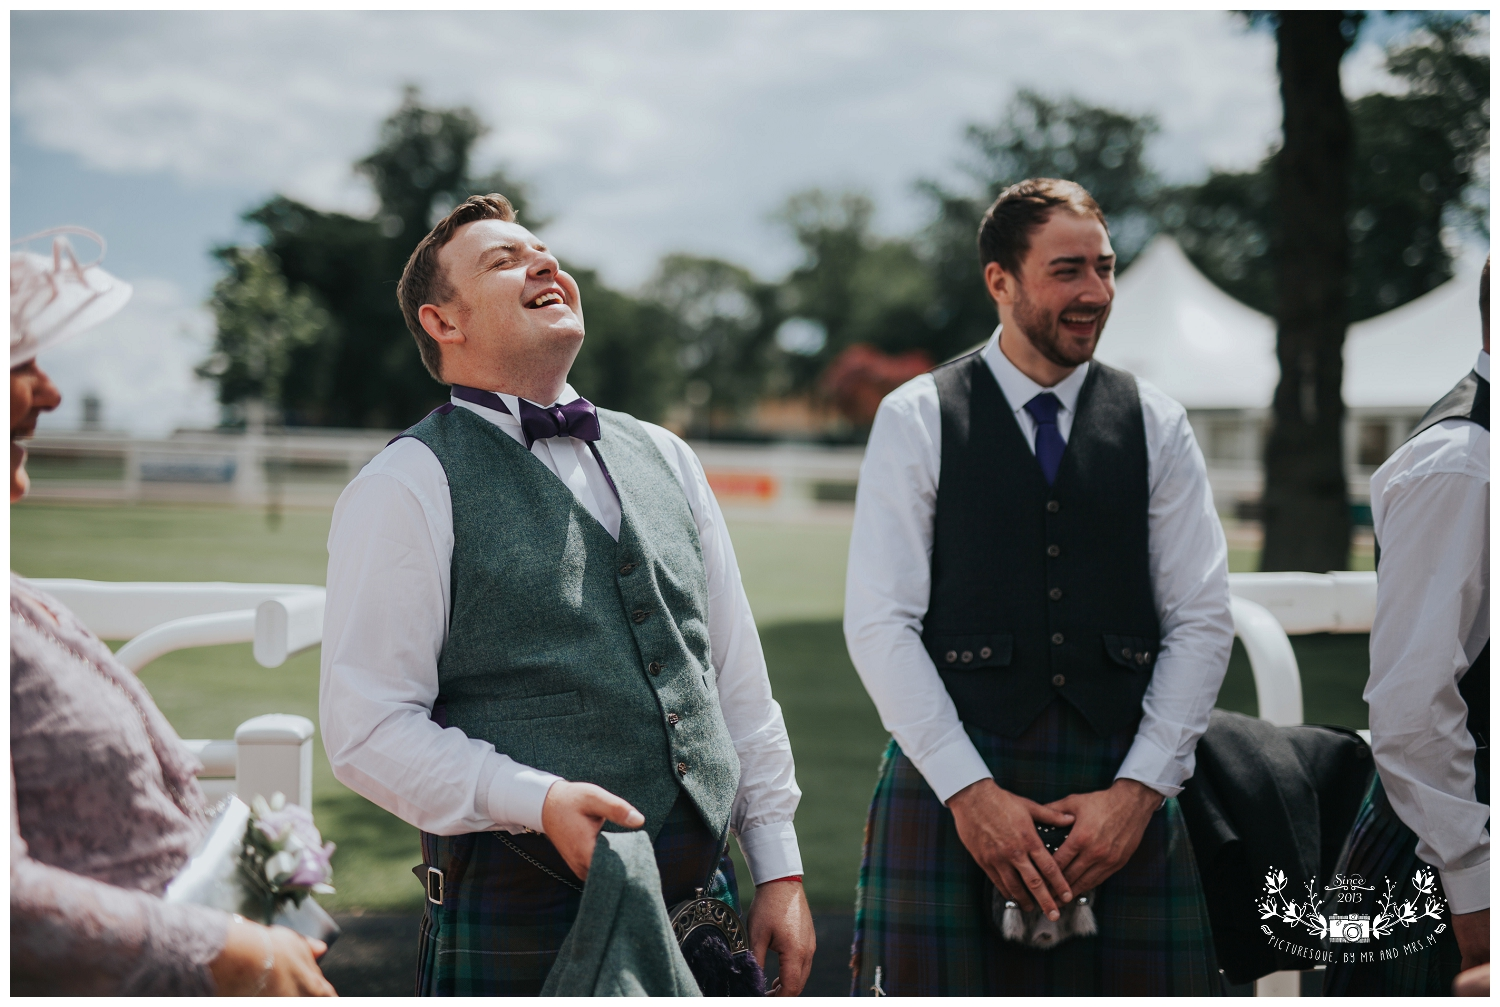 Hamilton Park Racecourse  wedding photography, Picturesque by Mr and Mrs M_0024.jpg